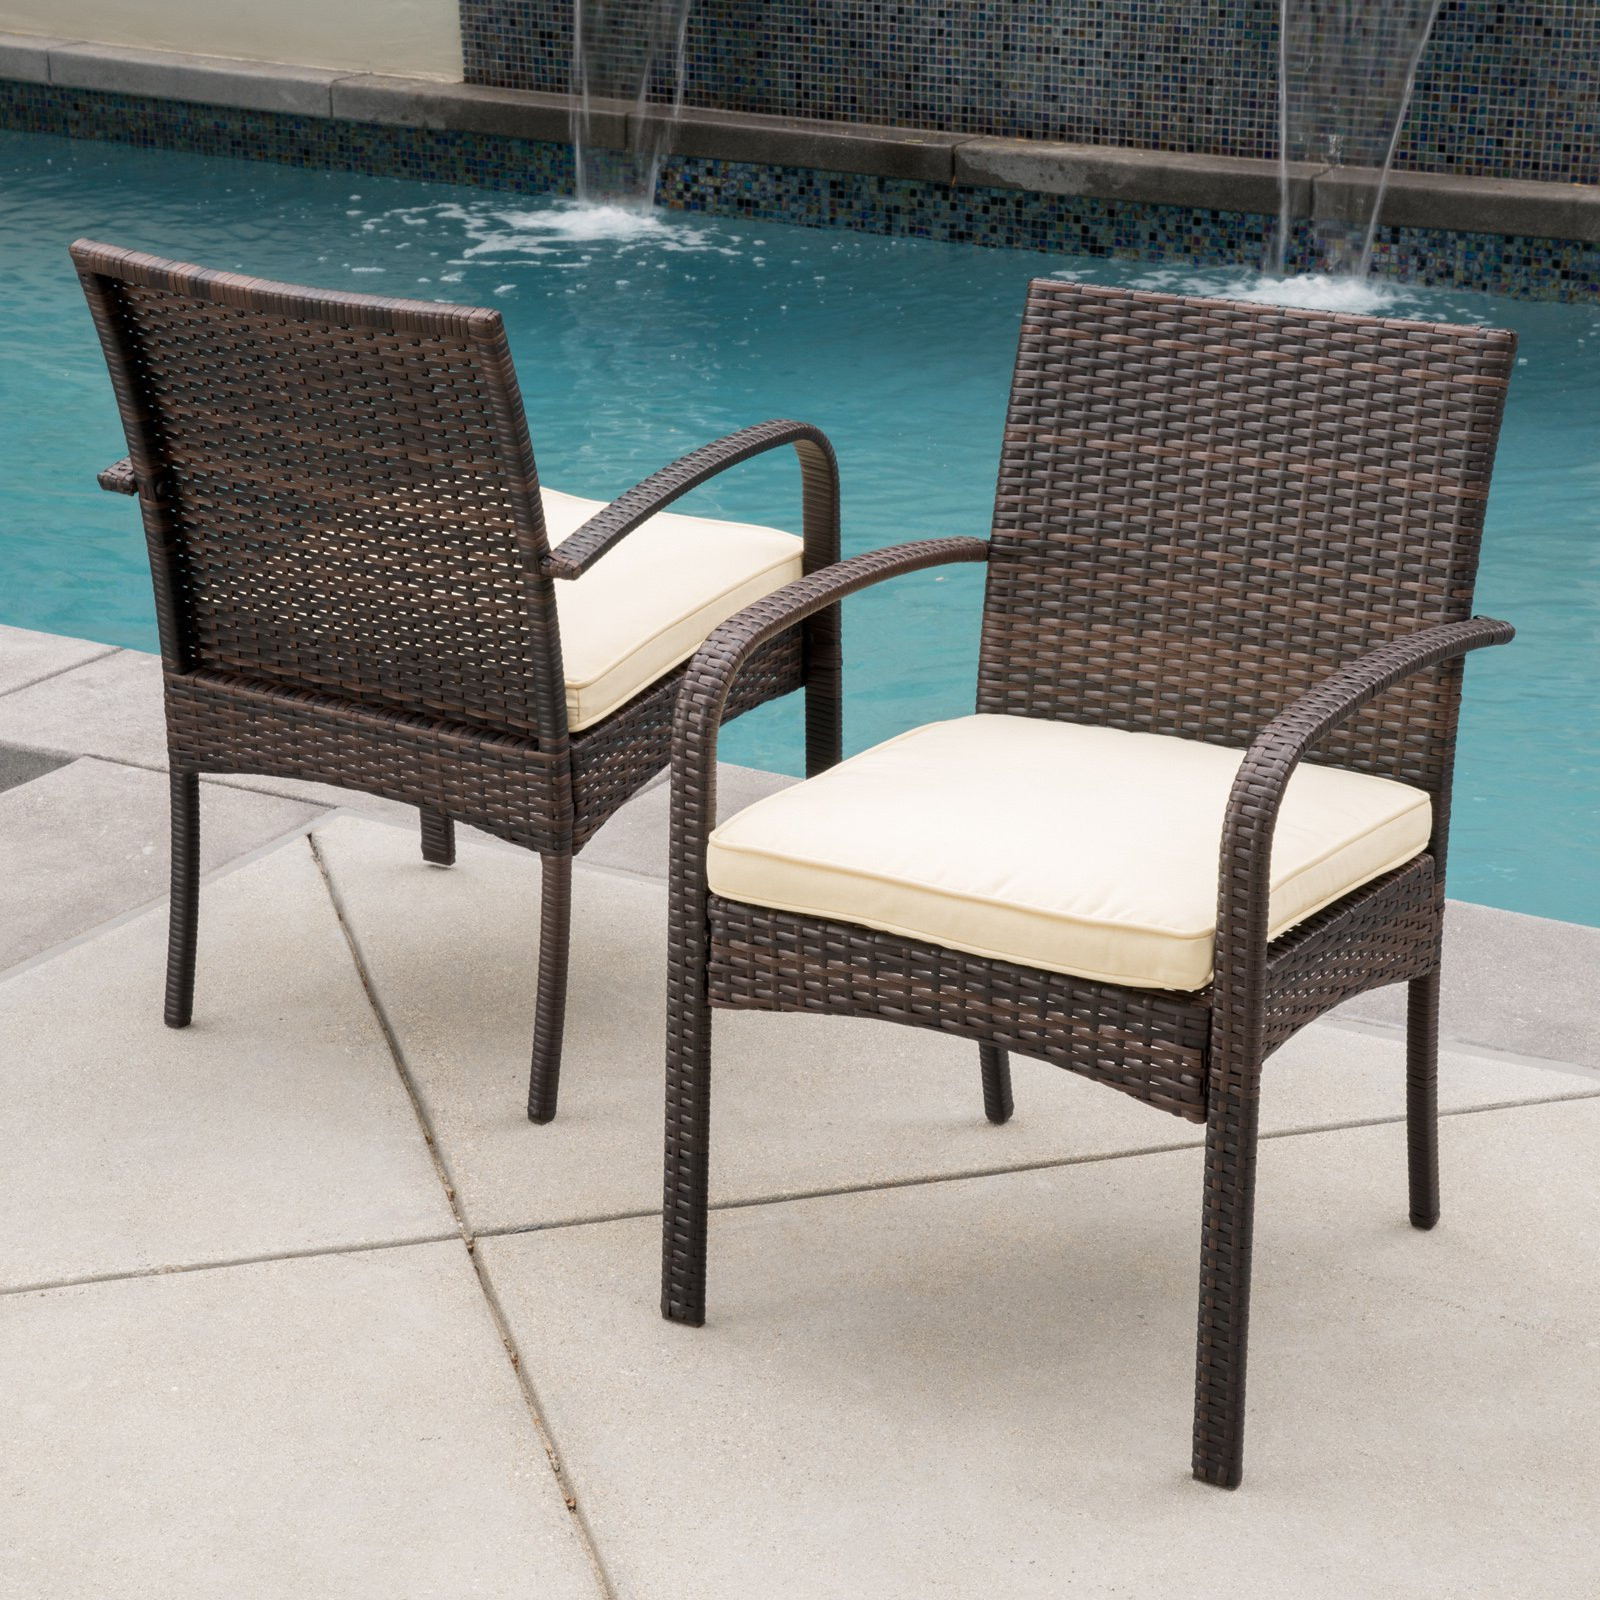 Best ideas about Patio Dining Chairs . Save or Pin Patio Chairs & Stools Walmart Now.